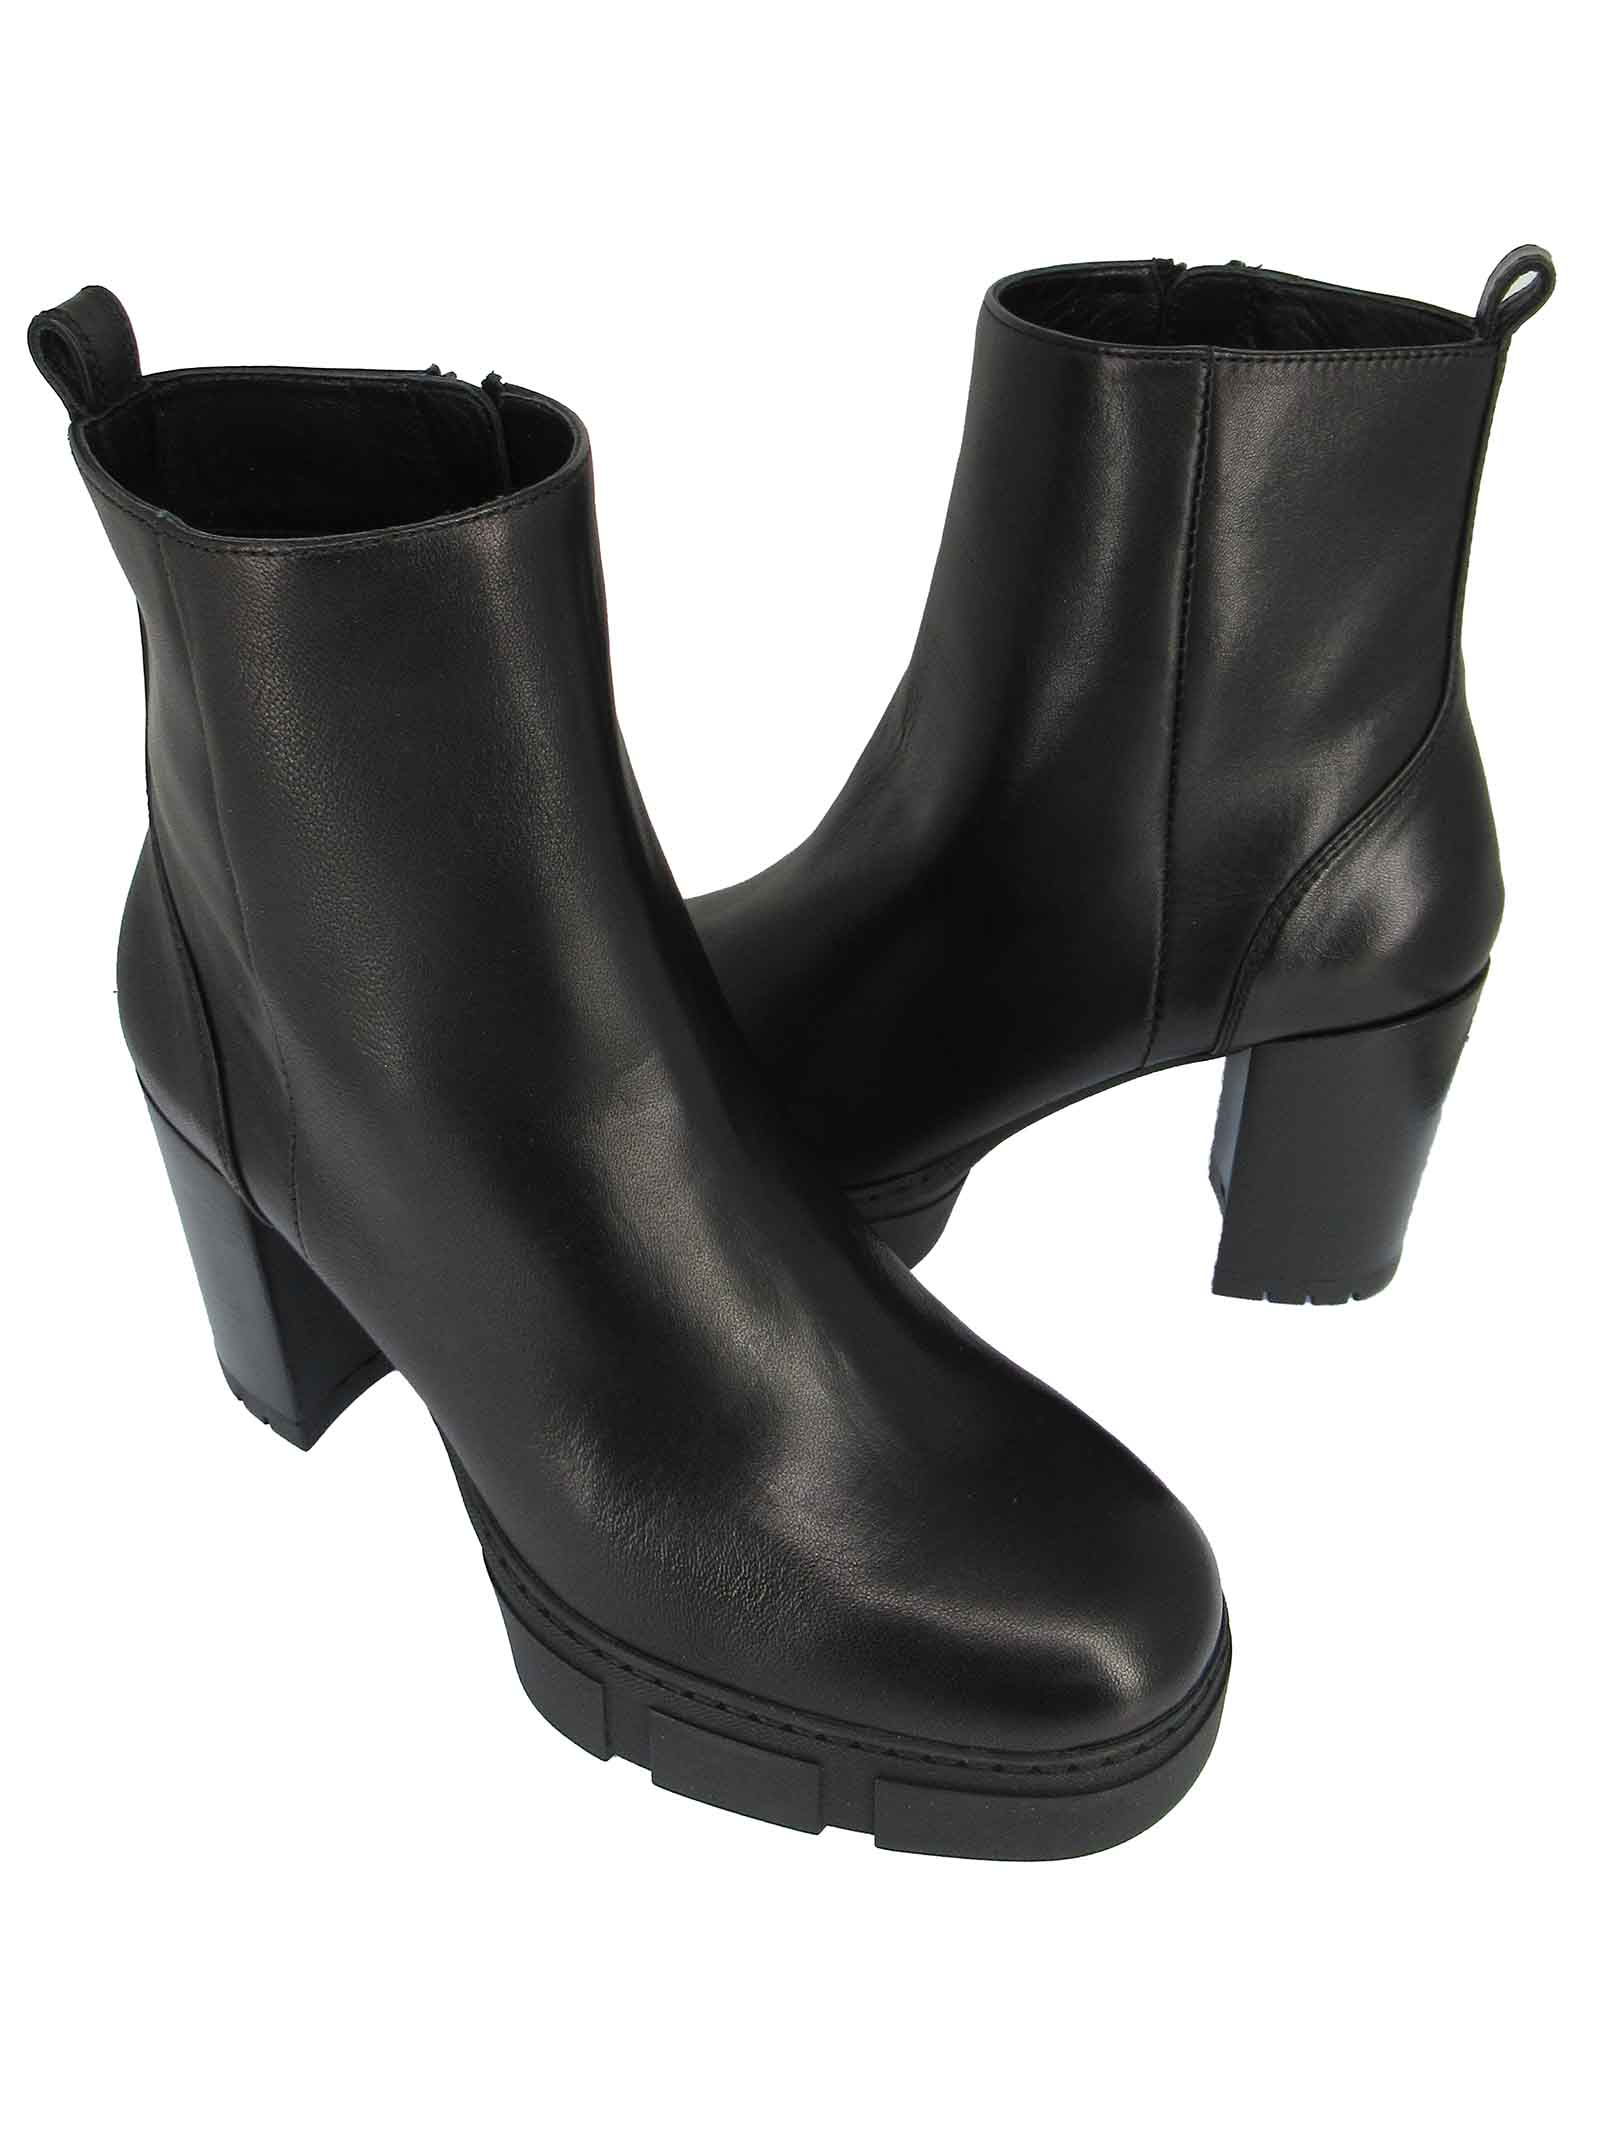 Women's Shoes Ankle Boot in Black Leather High Heel and Rubber Platform Unisa | Ankle Boots | KOPSI001